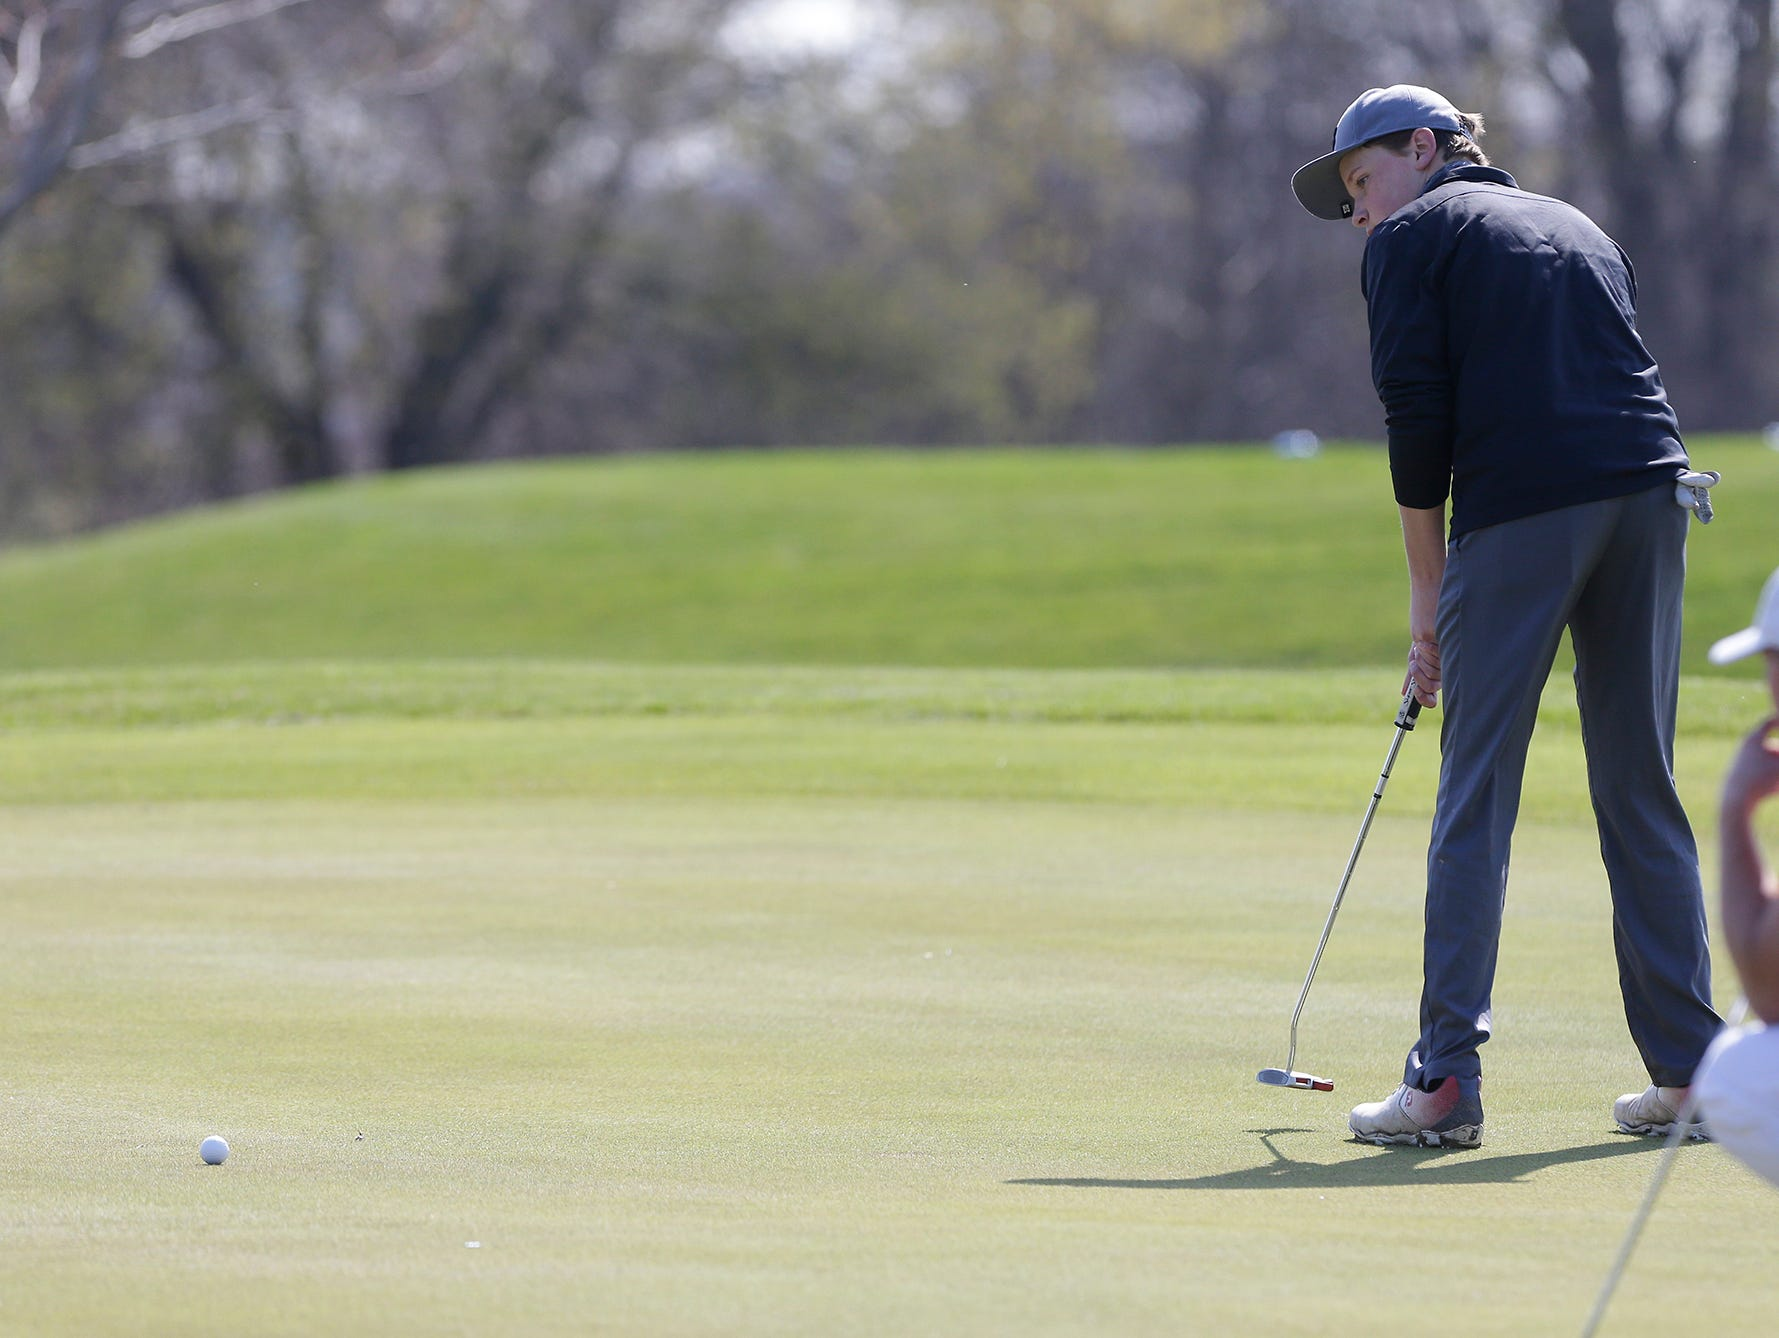 Parker Craft of Mosinee High School competes in the Fond du Lac High School golf invite Saturday, May 4, 2019 at Rolling Meadows Golf Course in Fond du Lac, Wis. Doug Raflik/USA TODAY NETWORK-Wisconsin